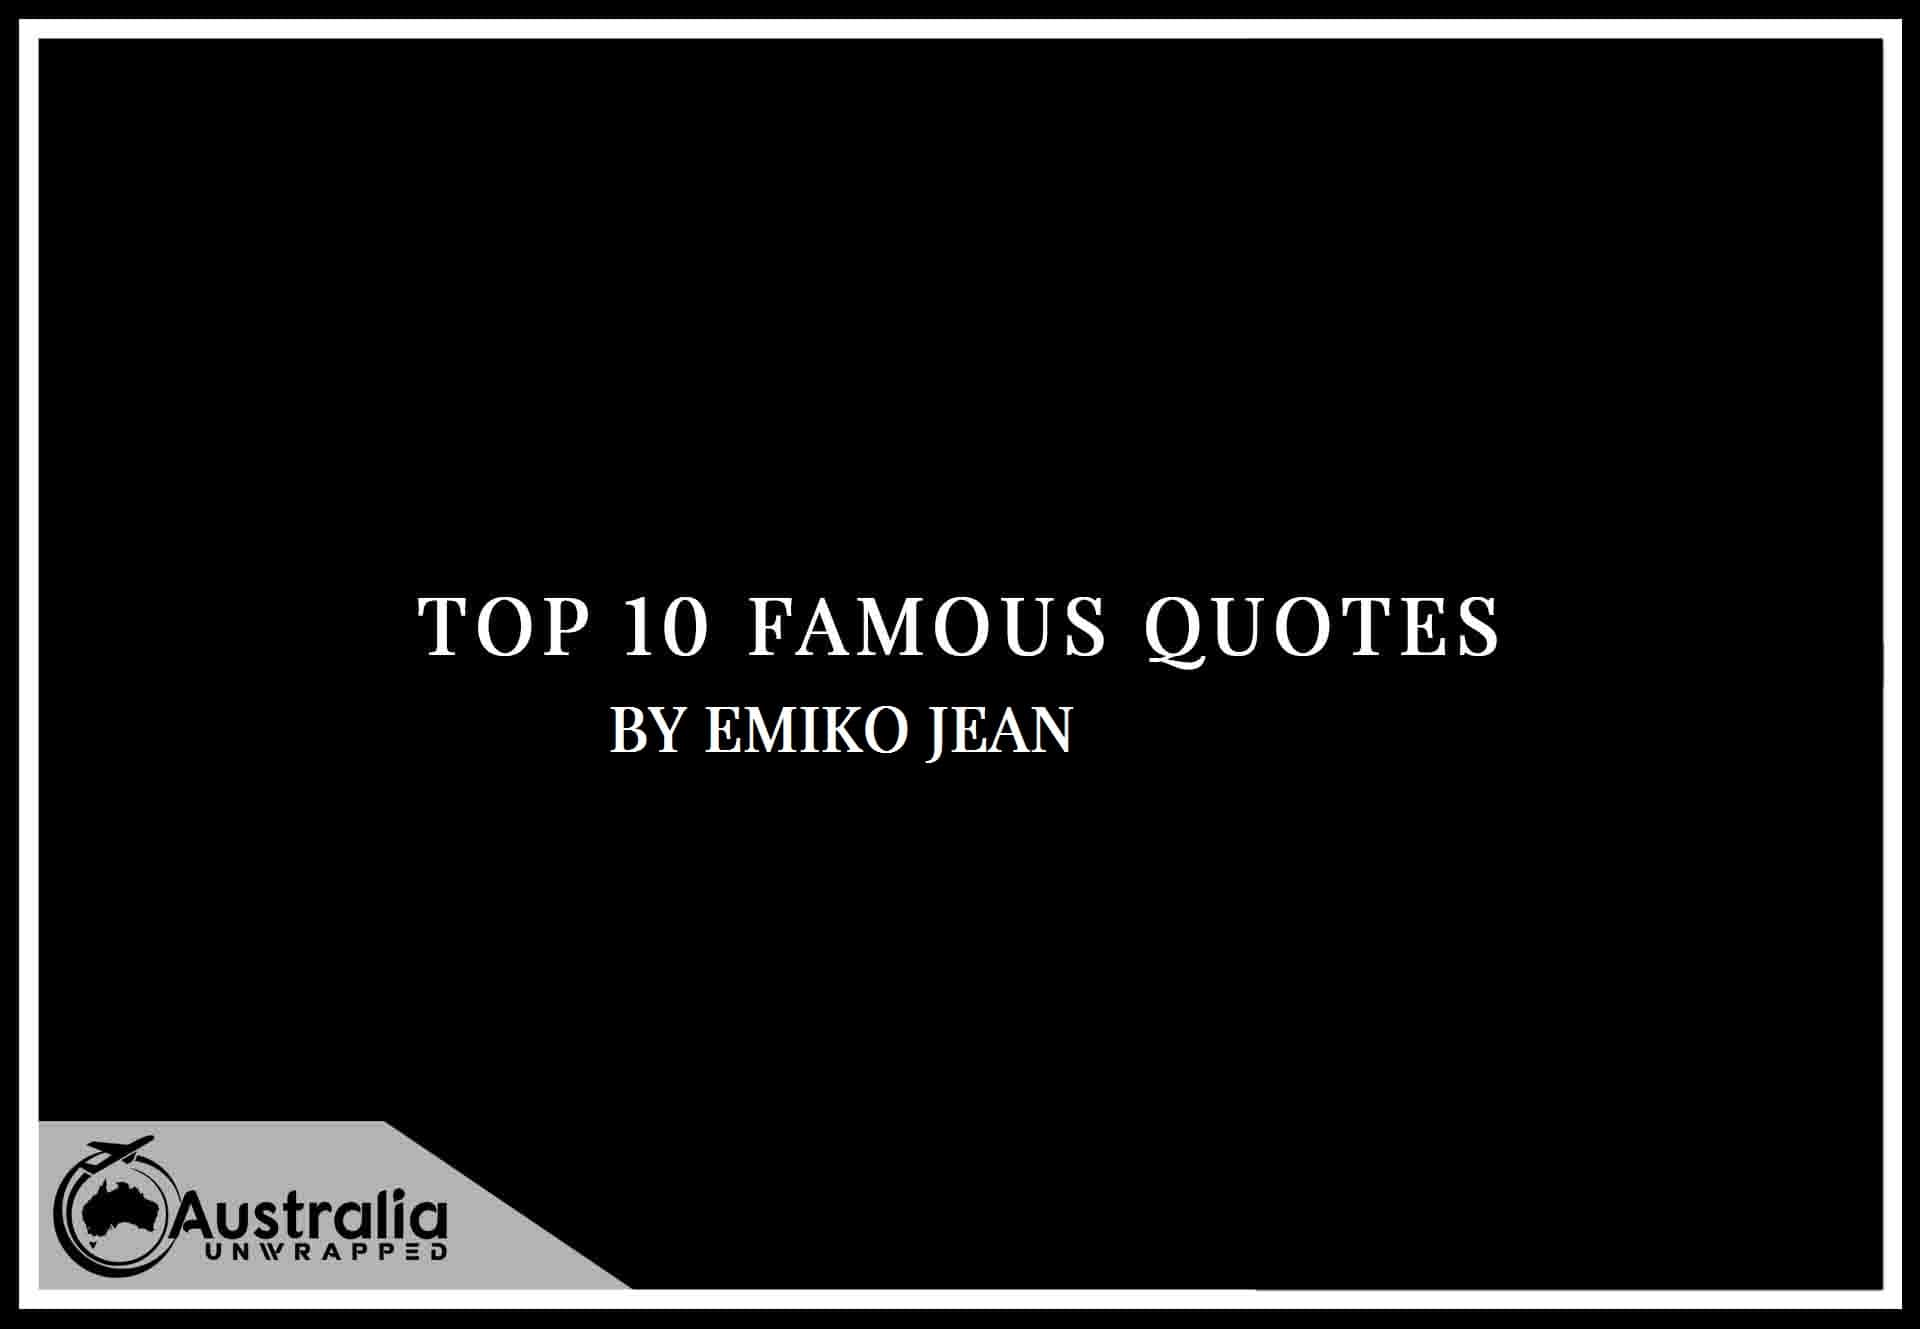 Emiko Jean's Top 10 Popular and Famous Quotes